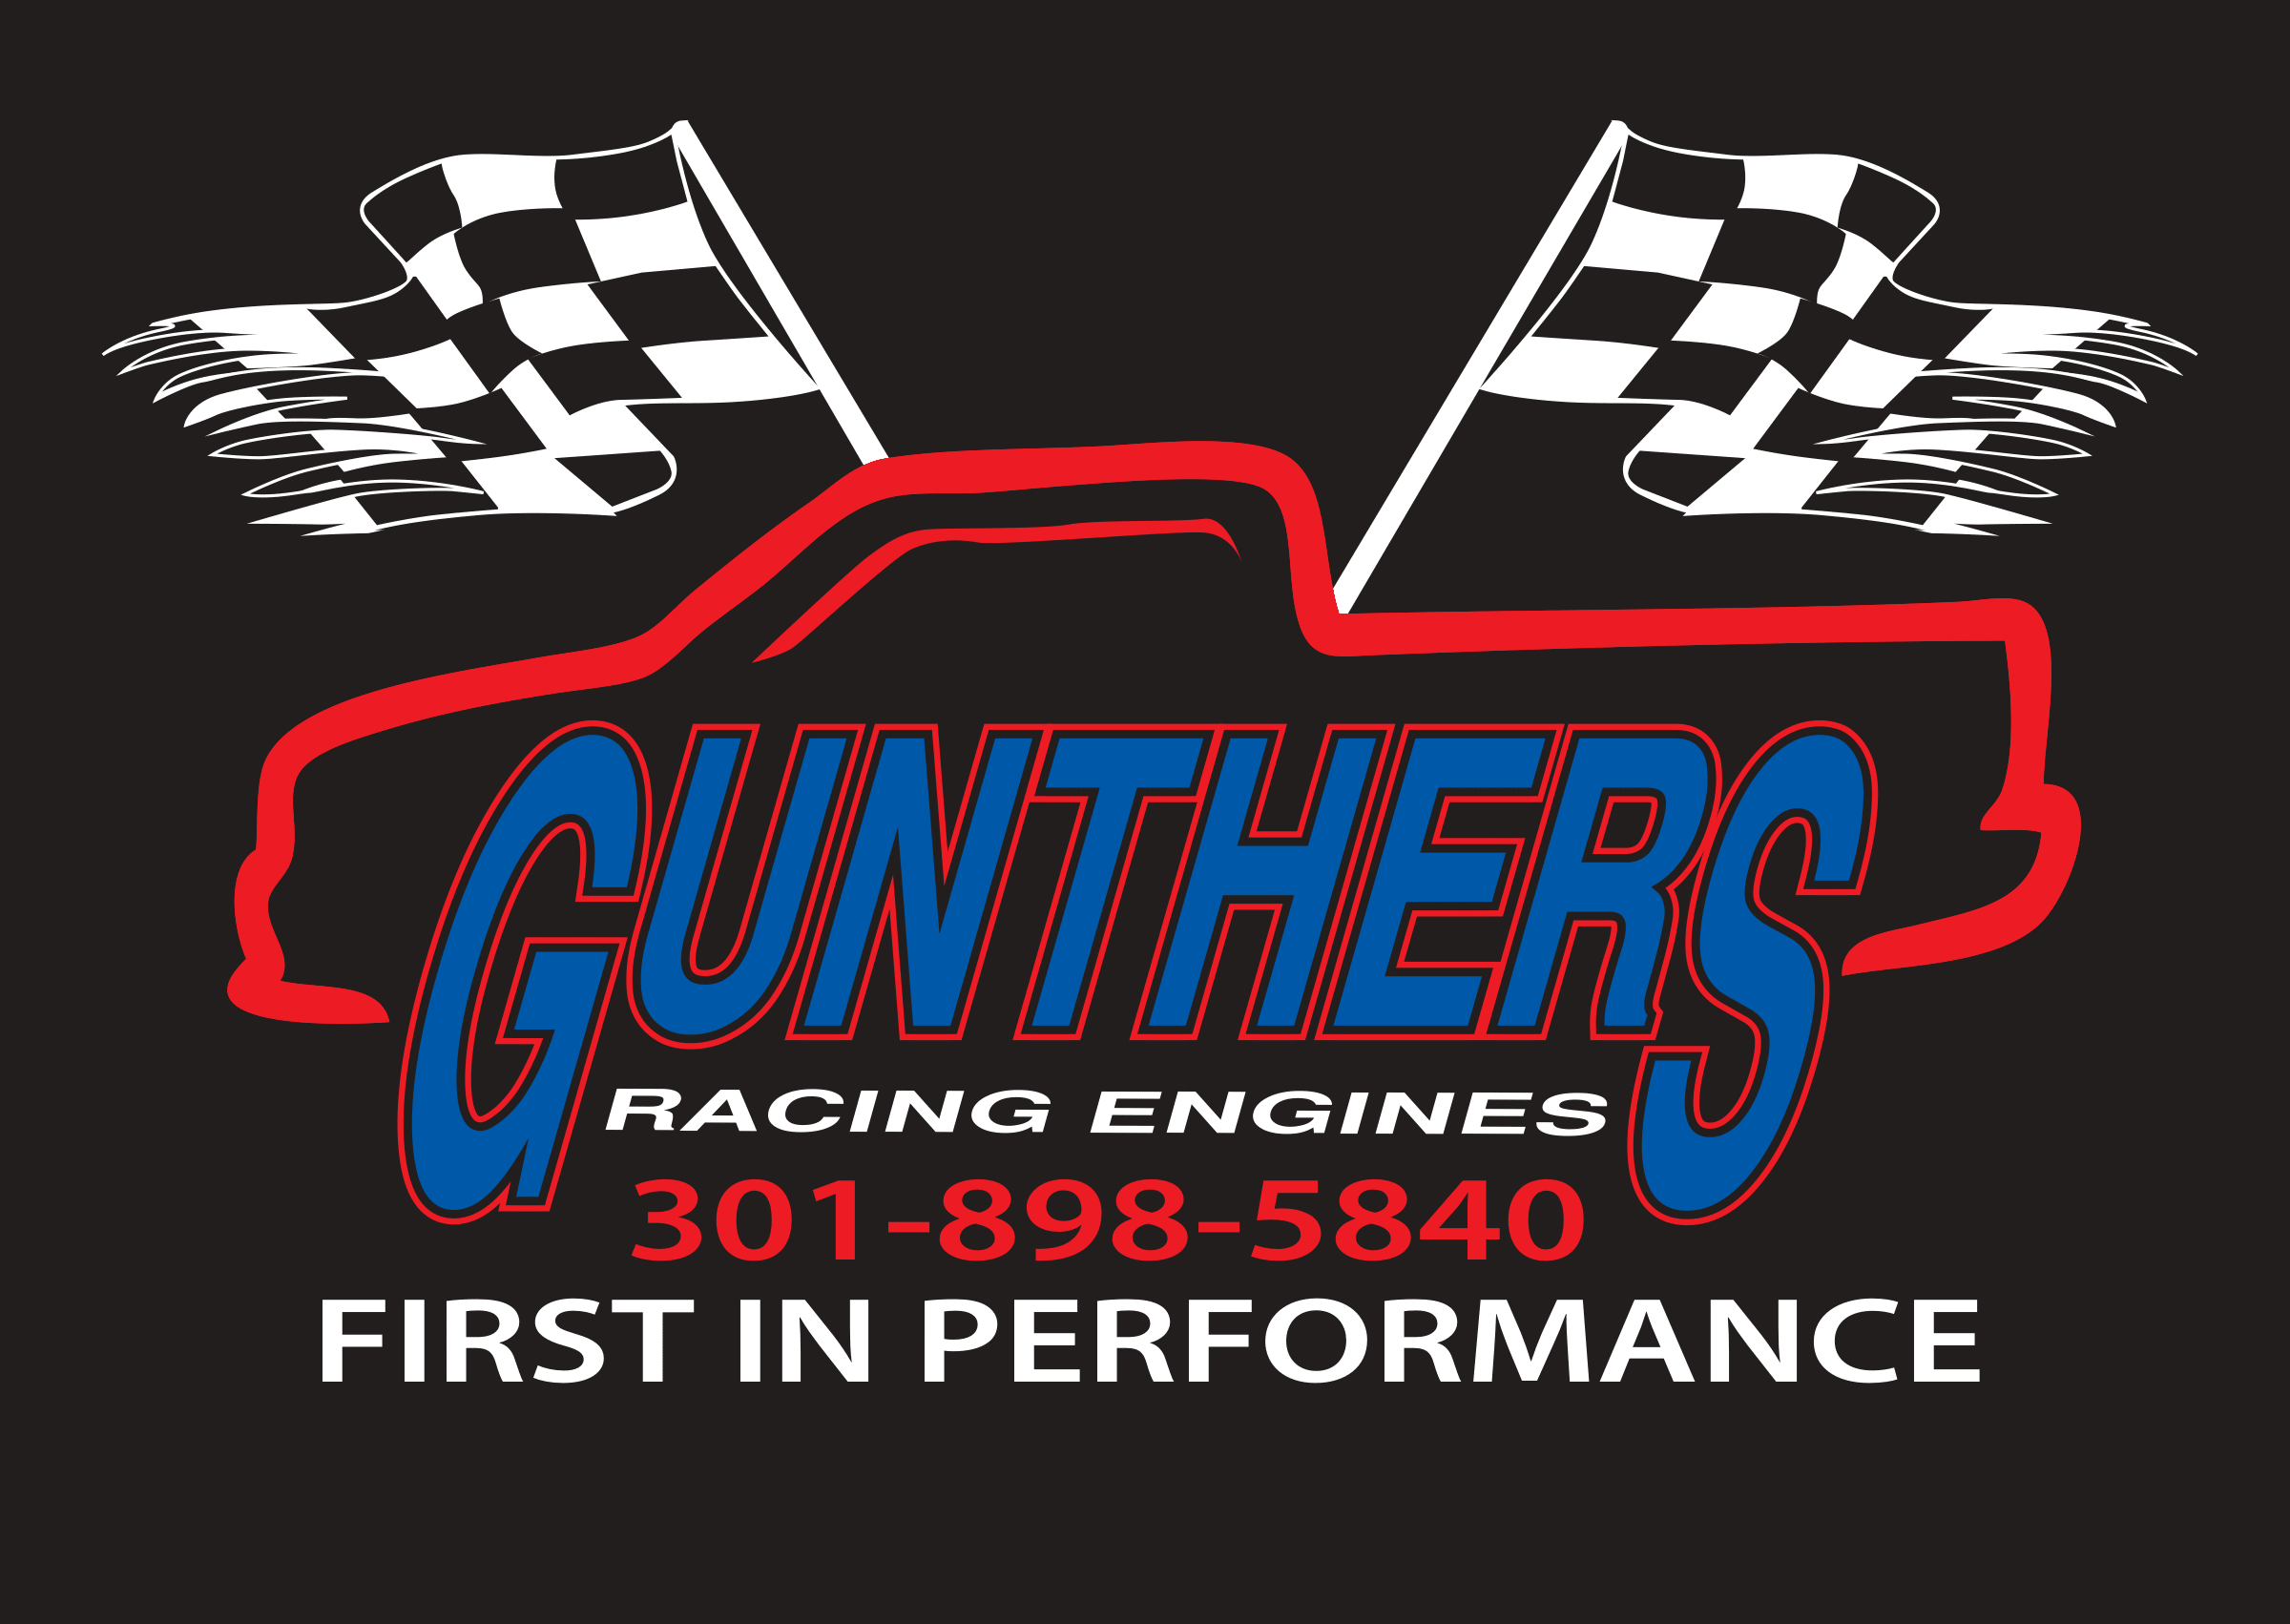 Gunther's Machining & Rebuilding Inc.